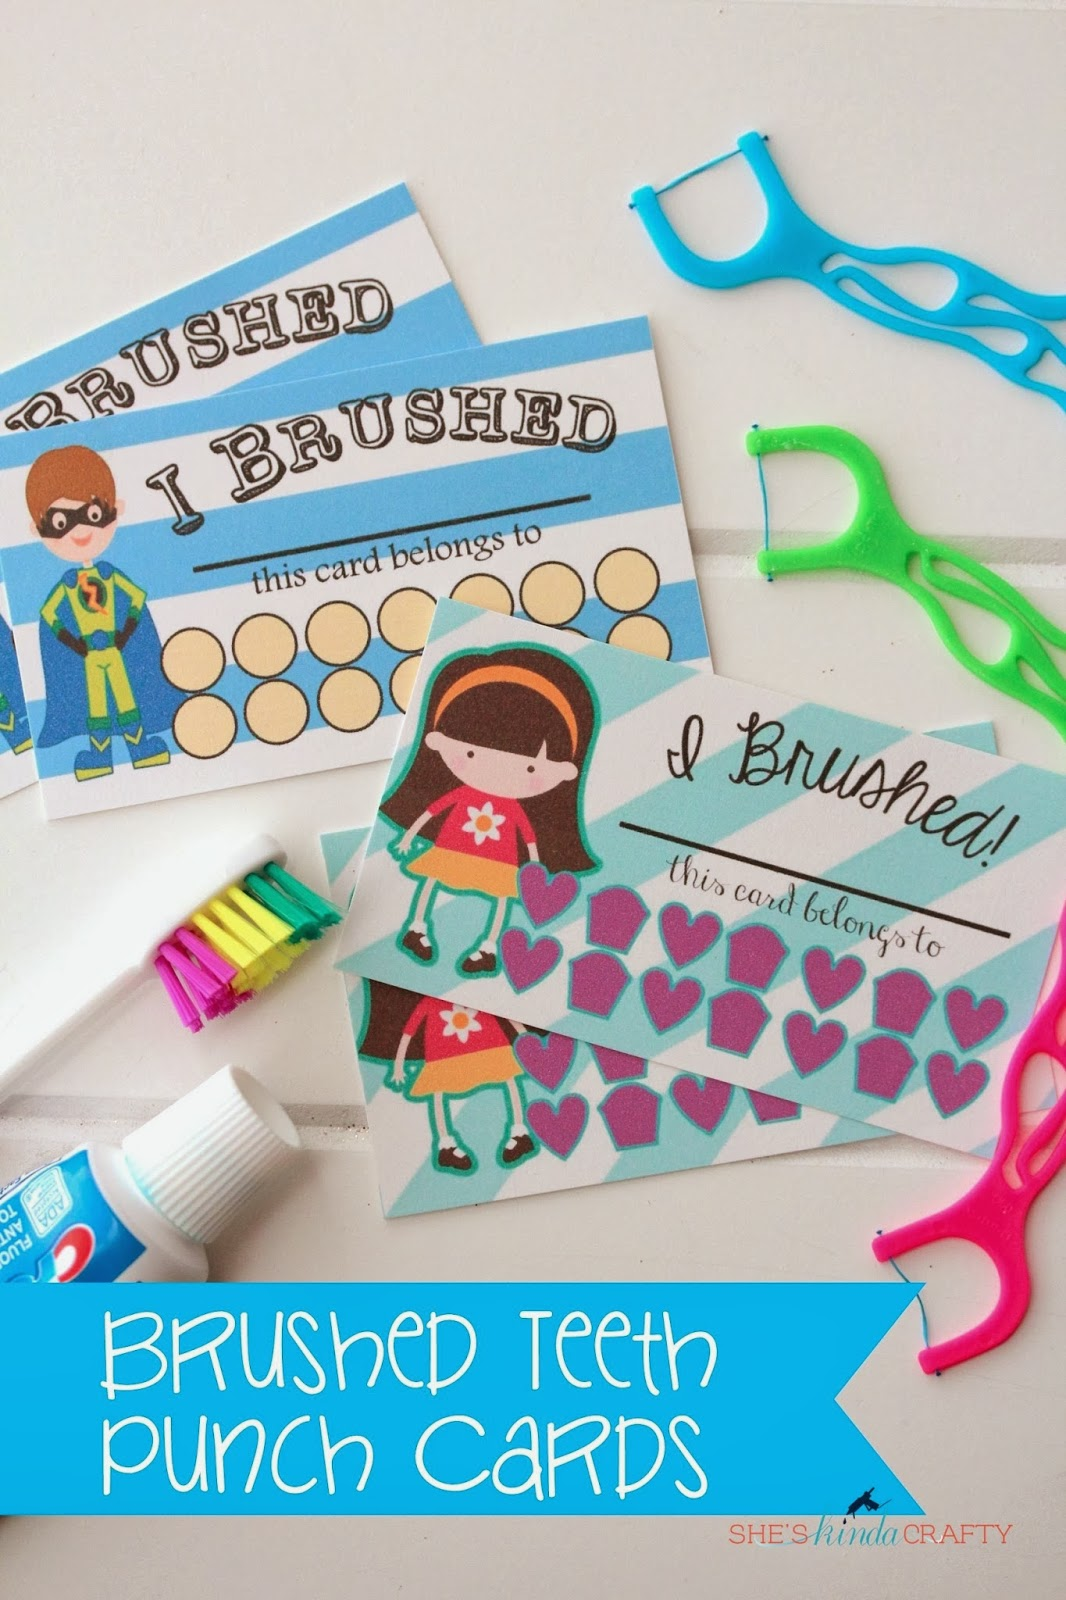 I Brushed My Teeth Punch Cards Free Printable